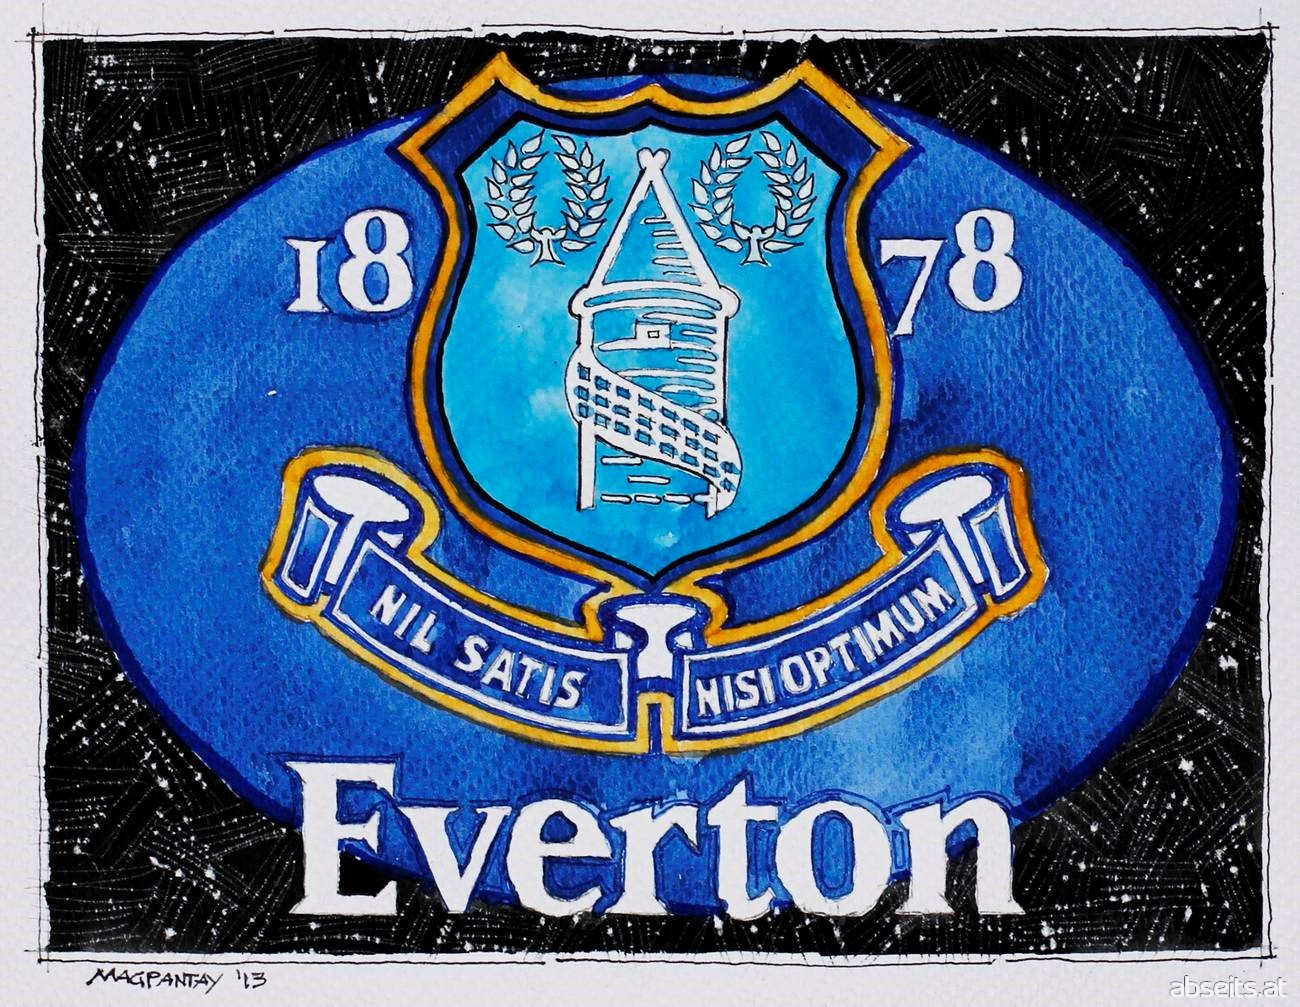 FC Everton Wappen Logo_abseits.at